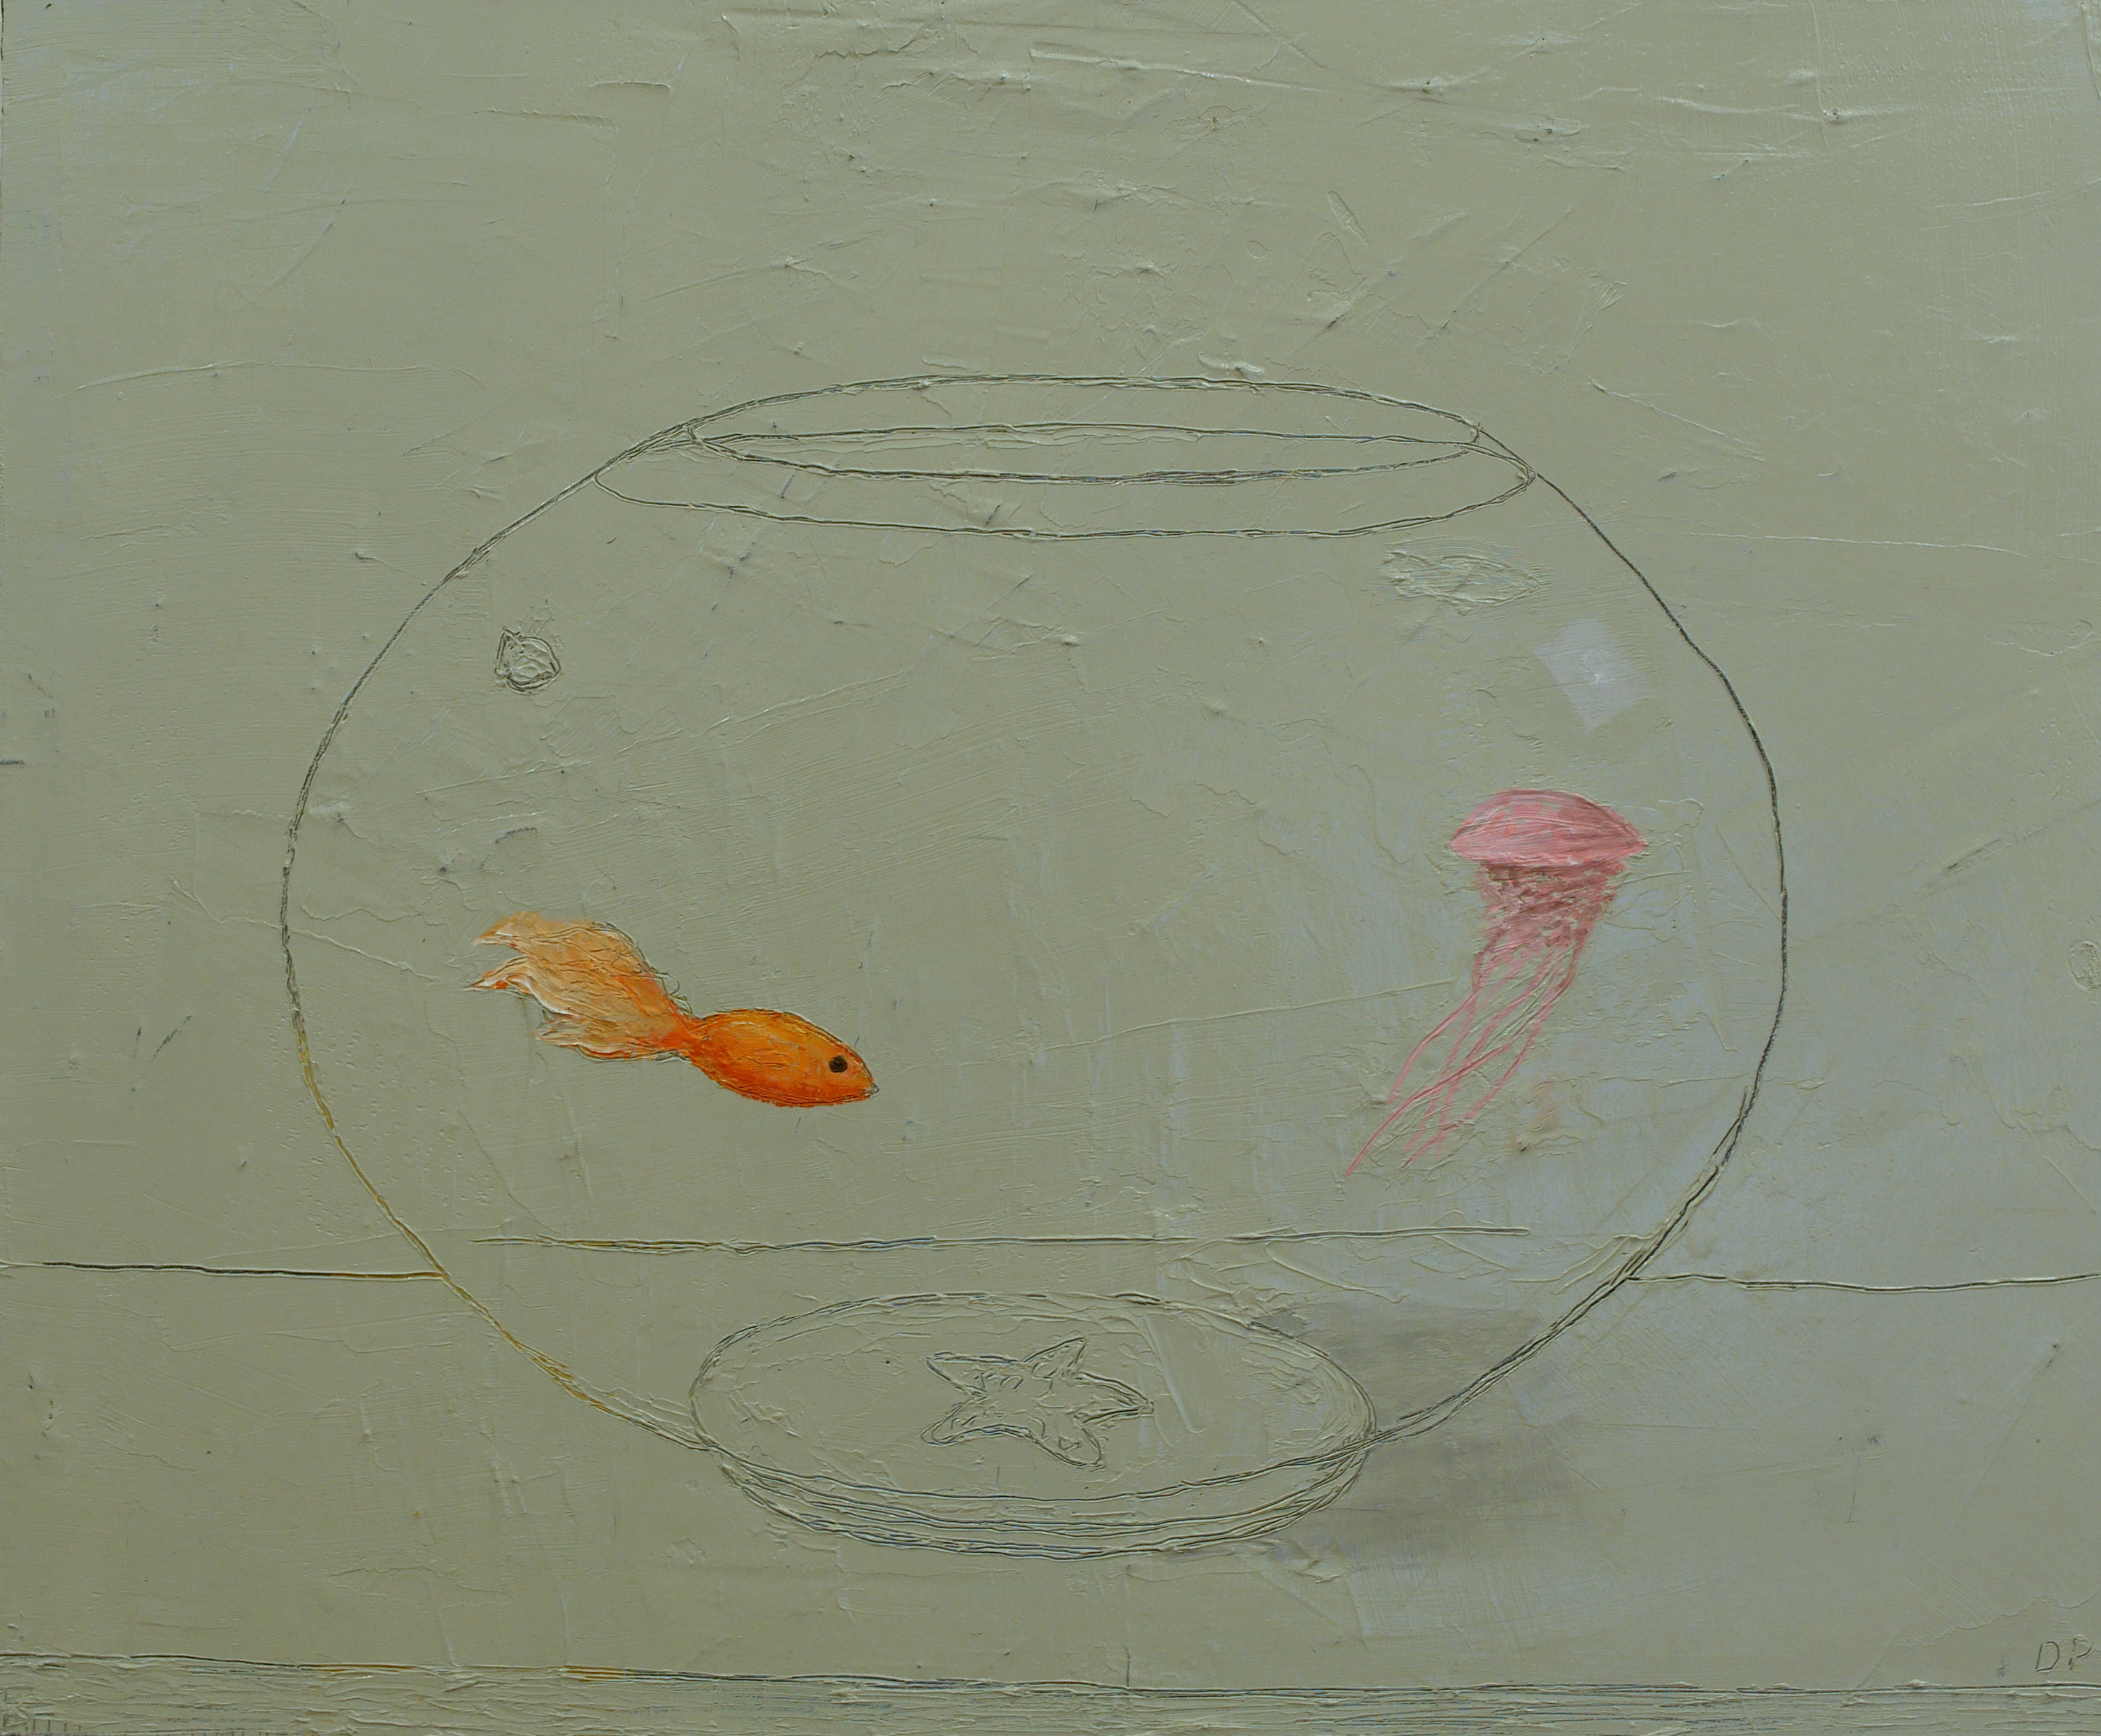 Dan Perrin, Aquarium, 2015, oil on panel, 50 x 60 cm